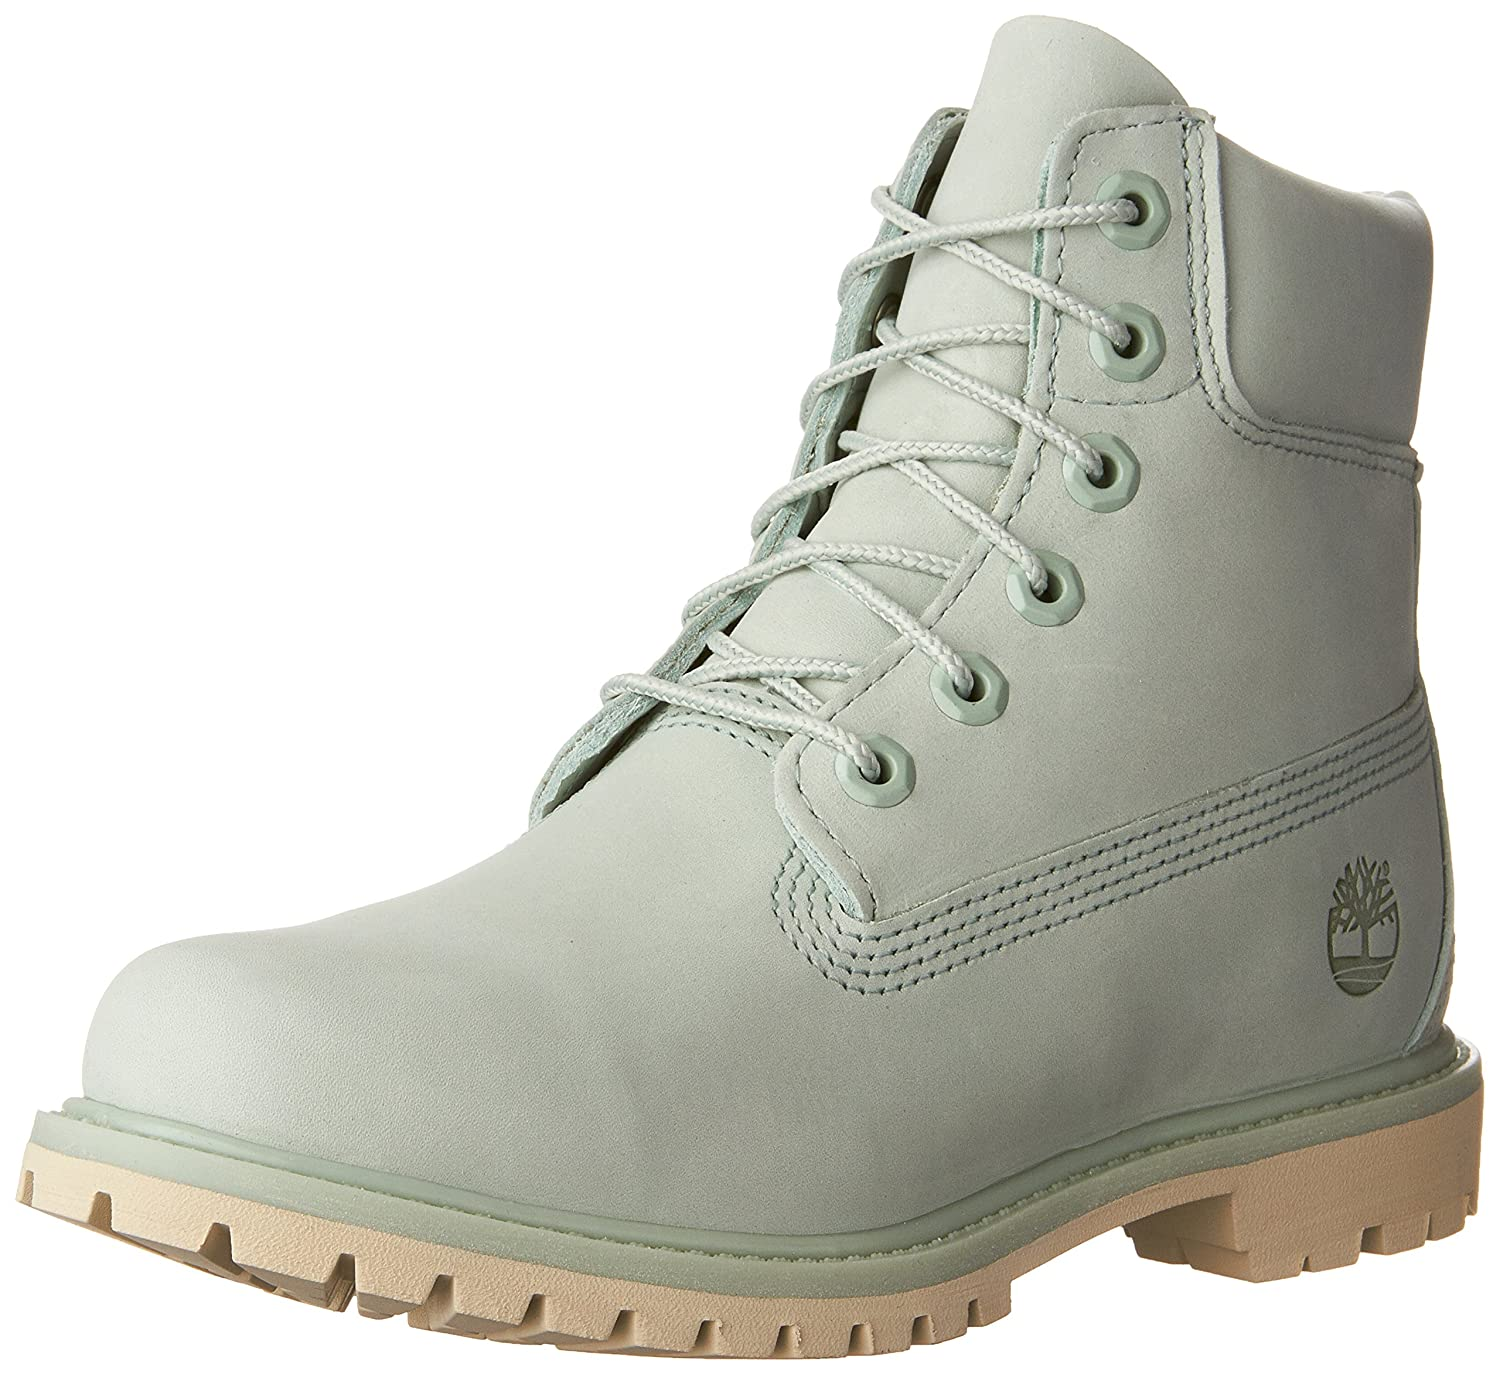 Timberland Boot 6in Premium Boot Bj9, Bottes et Bottines (Green) Bottines Classiques Mixte Adulte Vert (Green) 40ee57b - avtodorozhniks.space